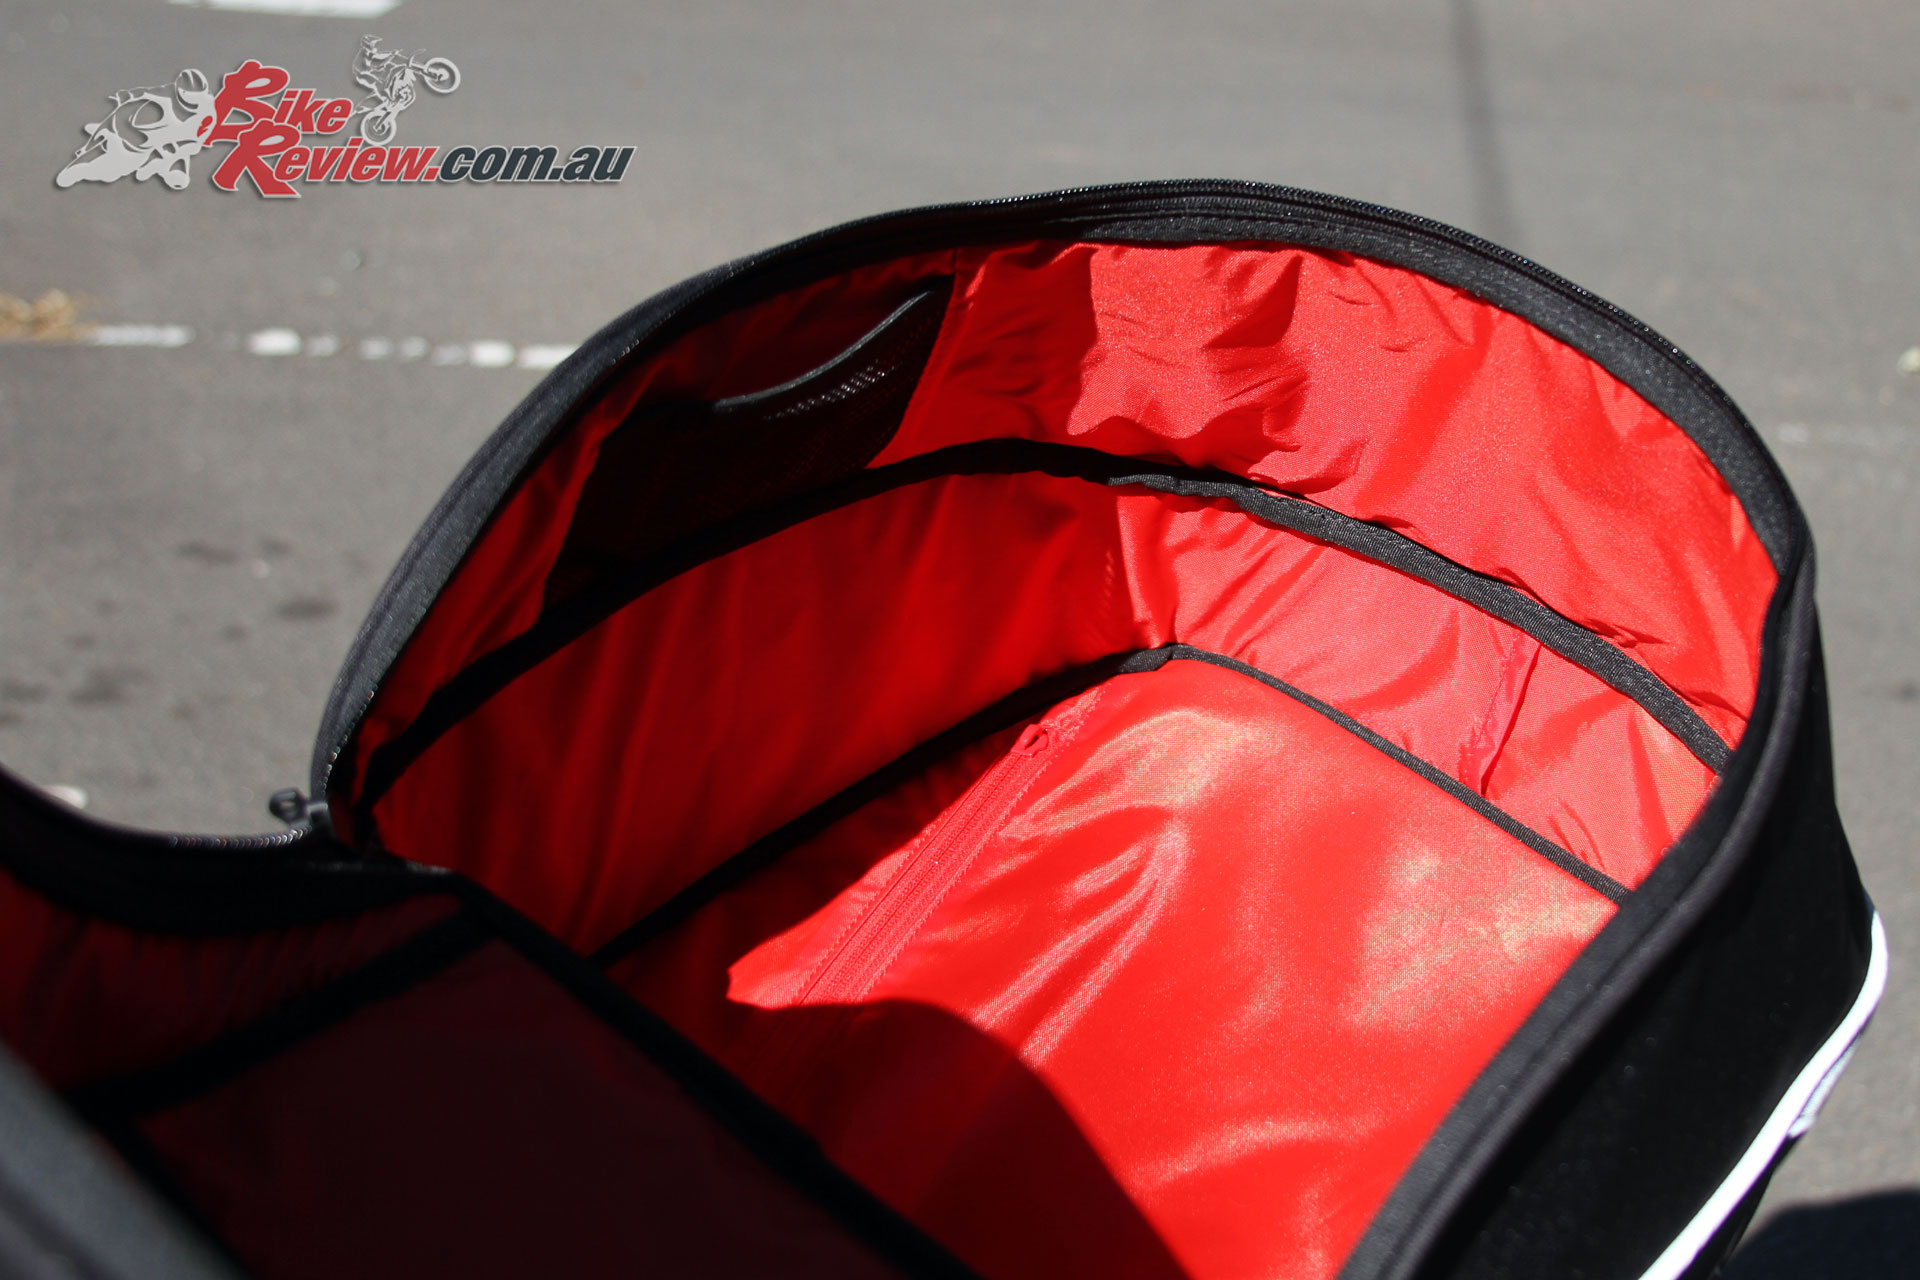 Internal red lining is an eye catching feature on the EVO-22